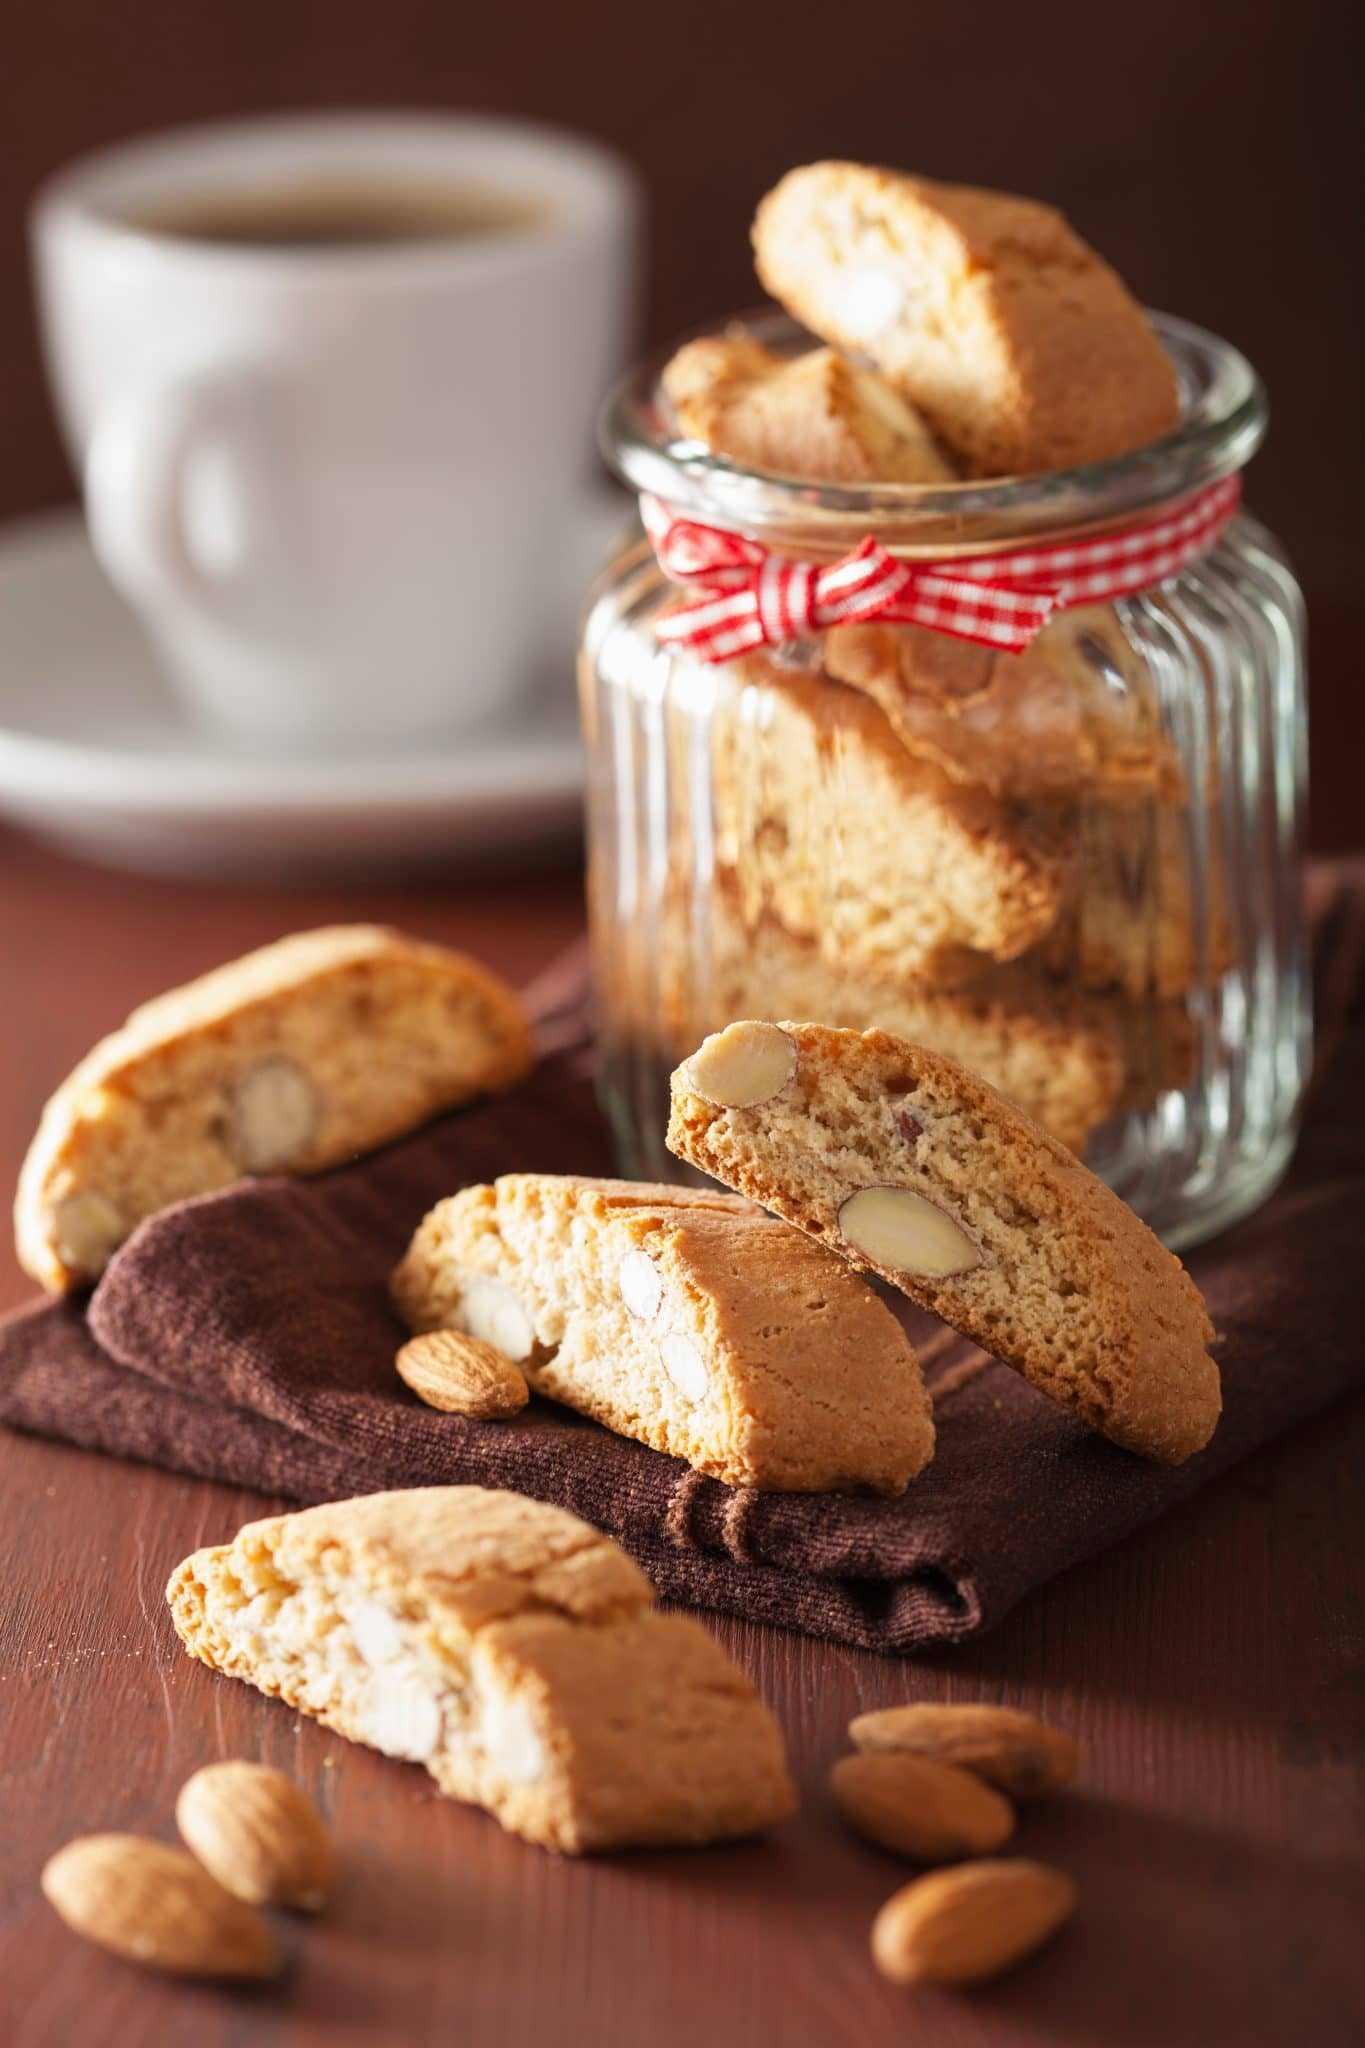 traditional-italian-cantuccini-cookies-in-glass-PHJ24YZ